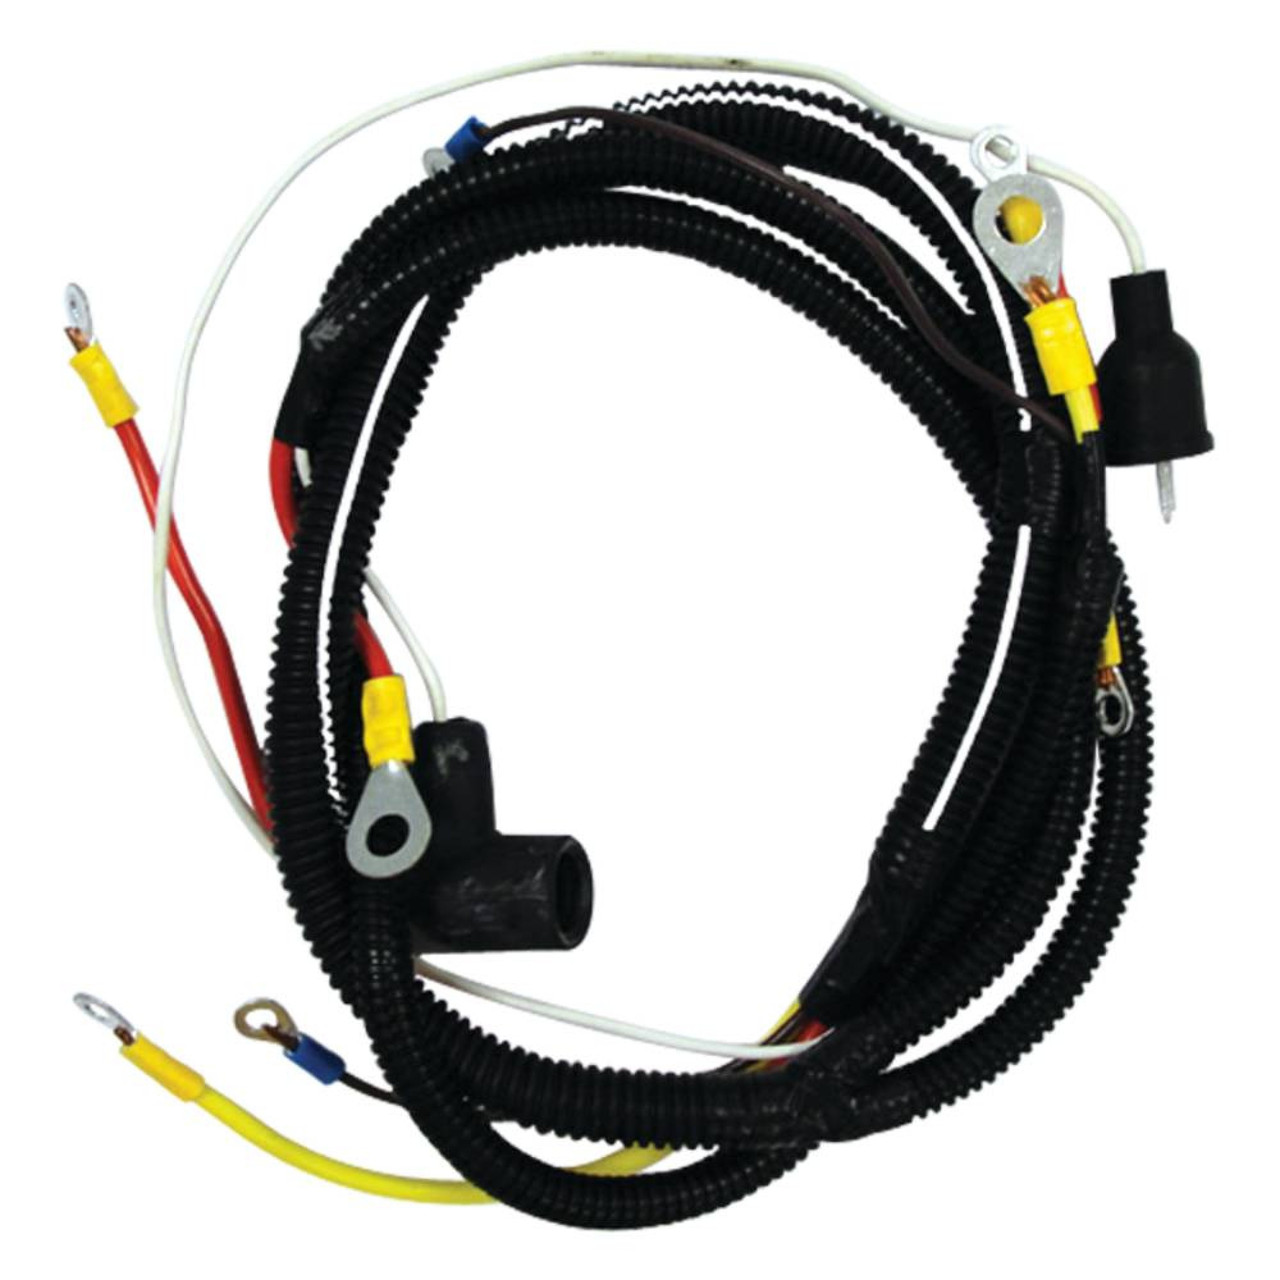 small resolution of new wiring harness for ford new holland 2n 8n 9n complete tractord3d71ba2asa5oz cloudfront net